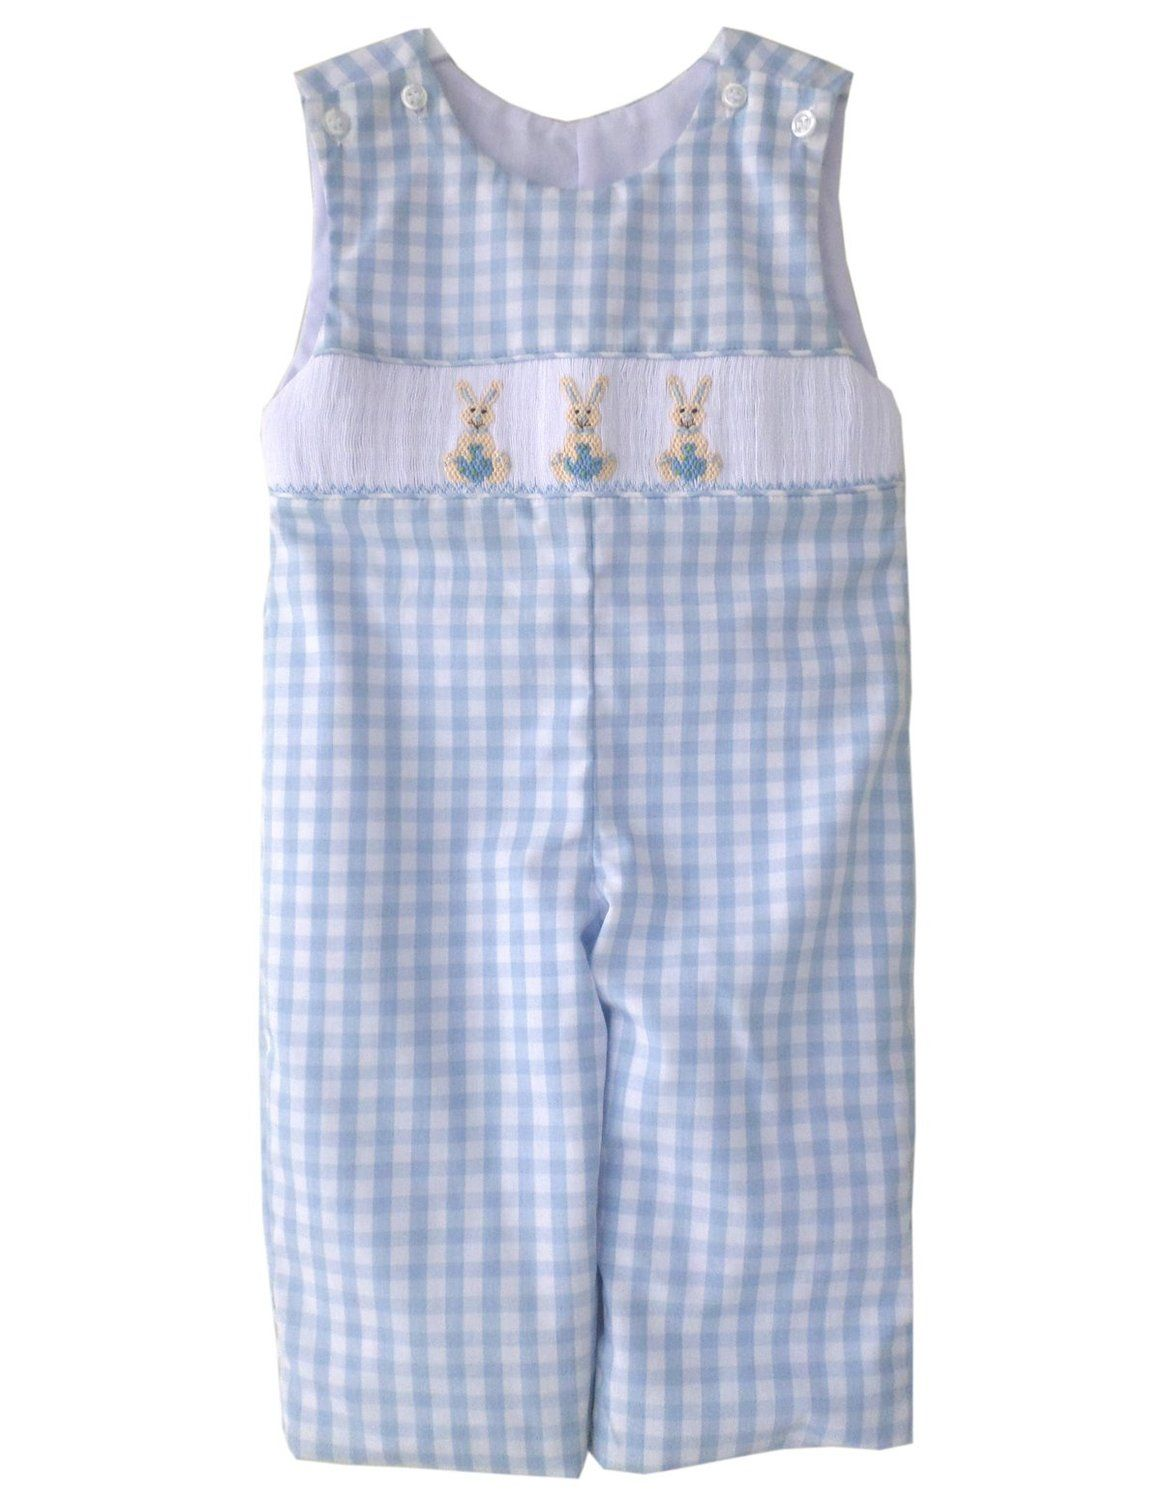 Robot Check Baby Boy Easter Newborn Easter Outfits Boys Smocked Outfits